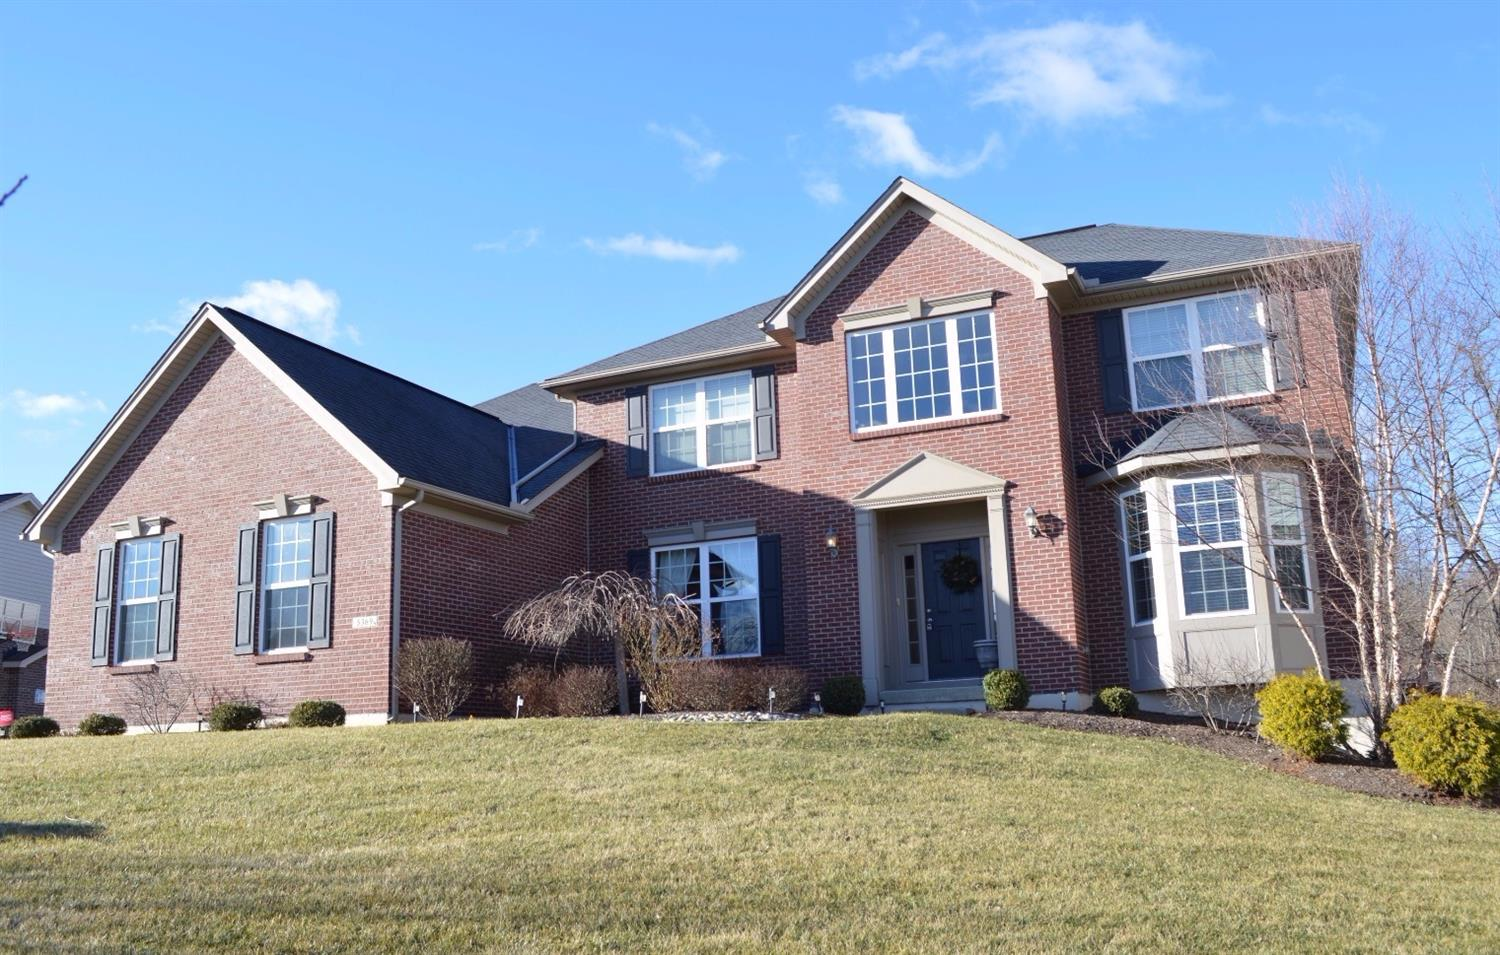 5369 Rentschler Estates Dr Fairfield Twp., OH